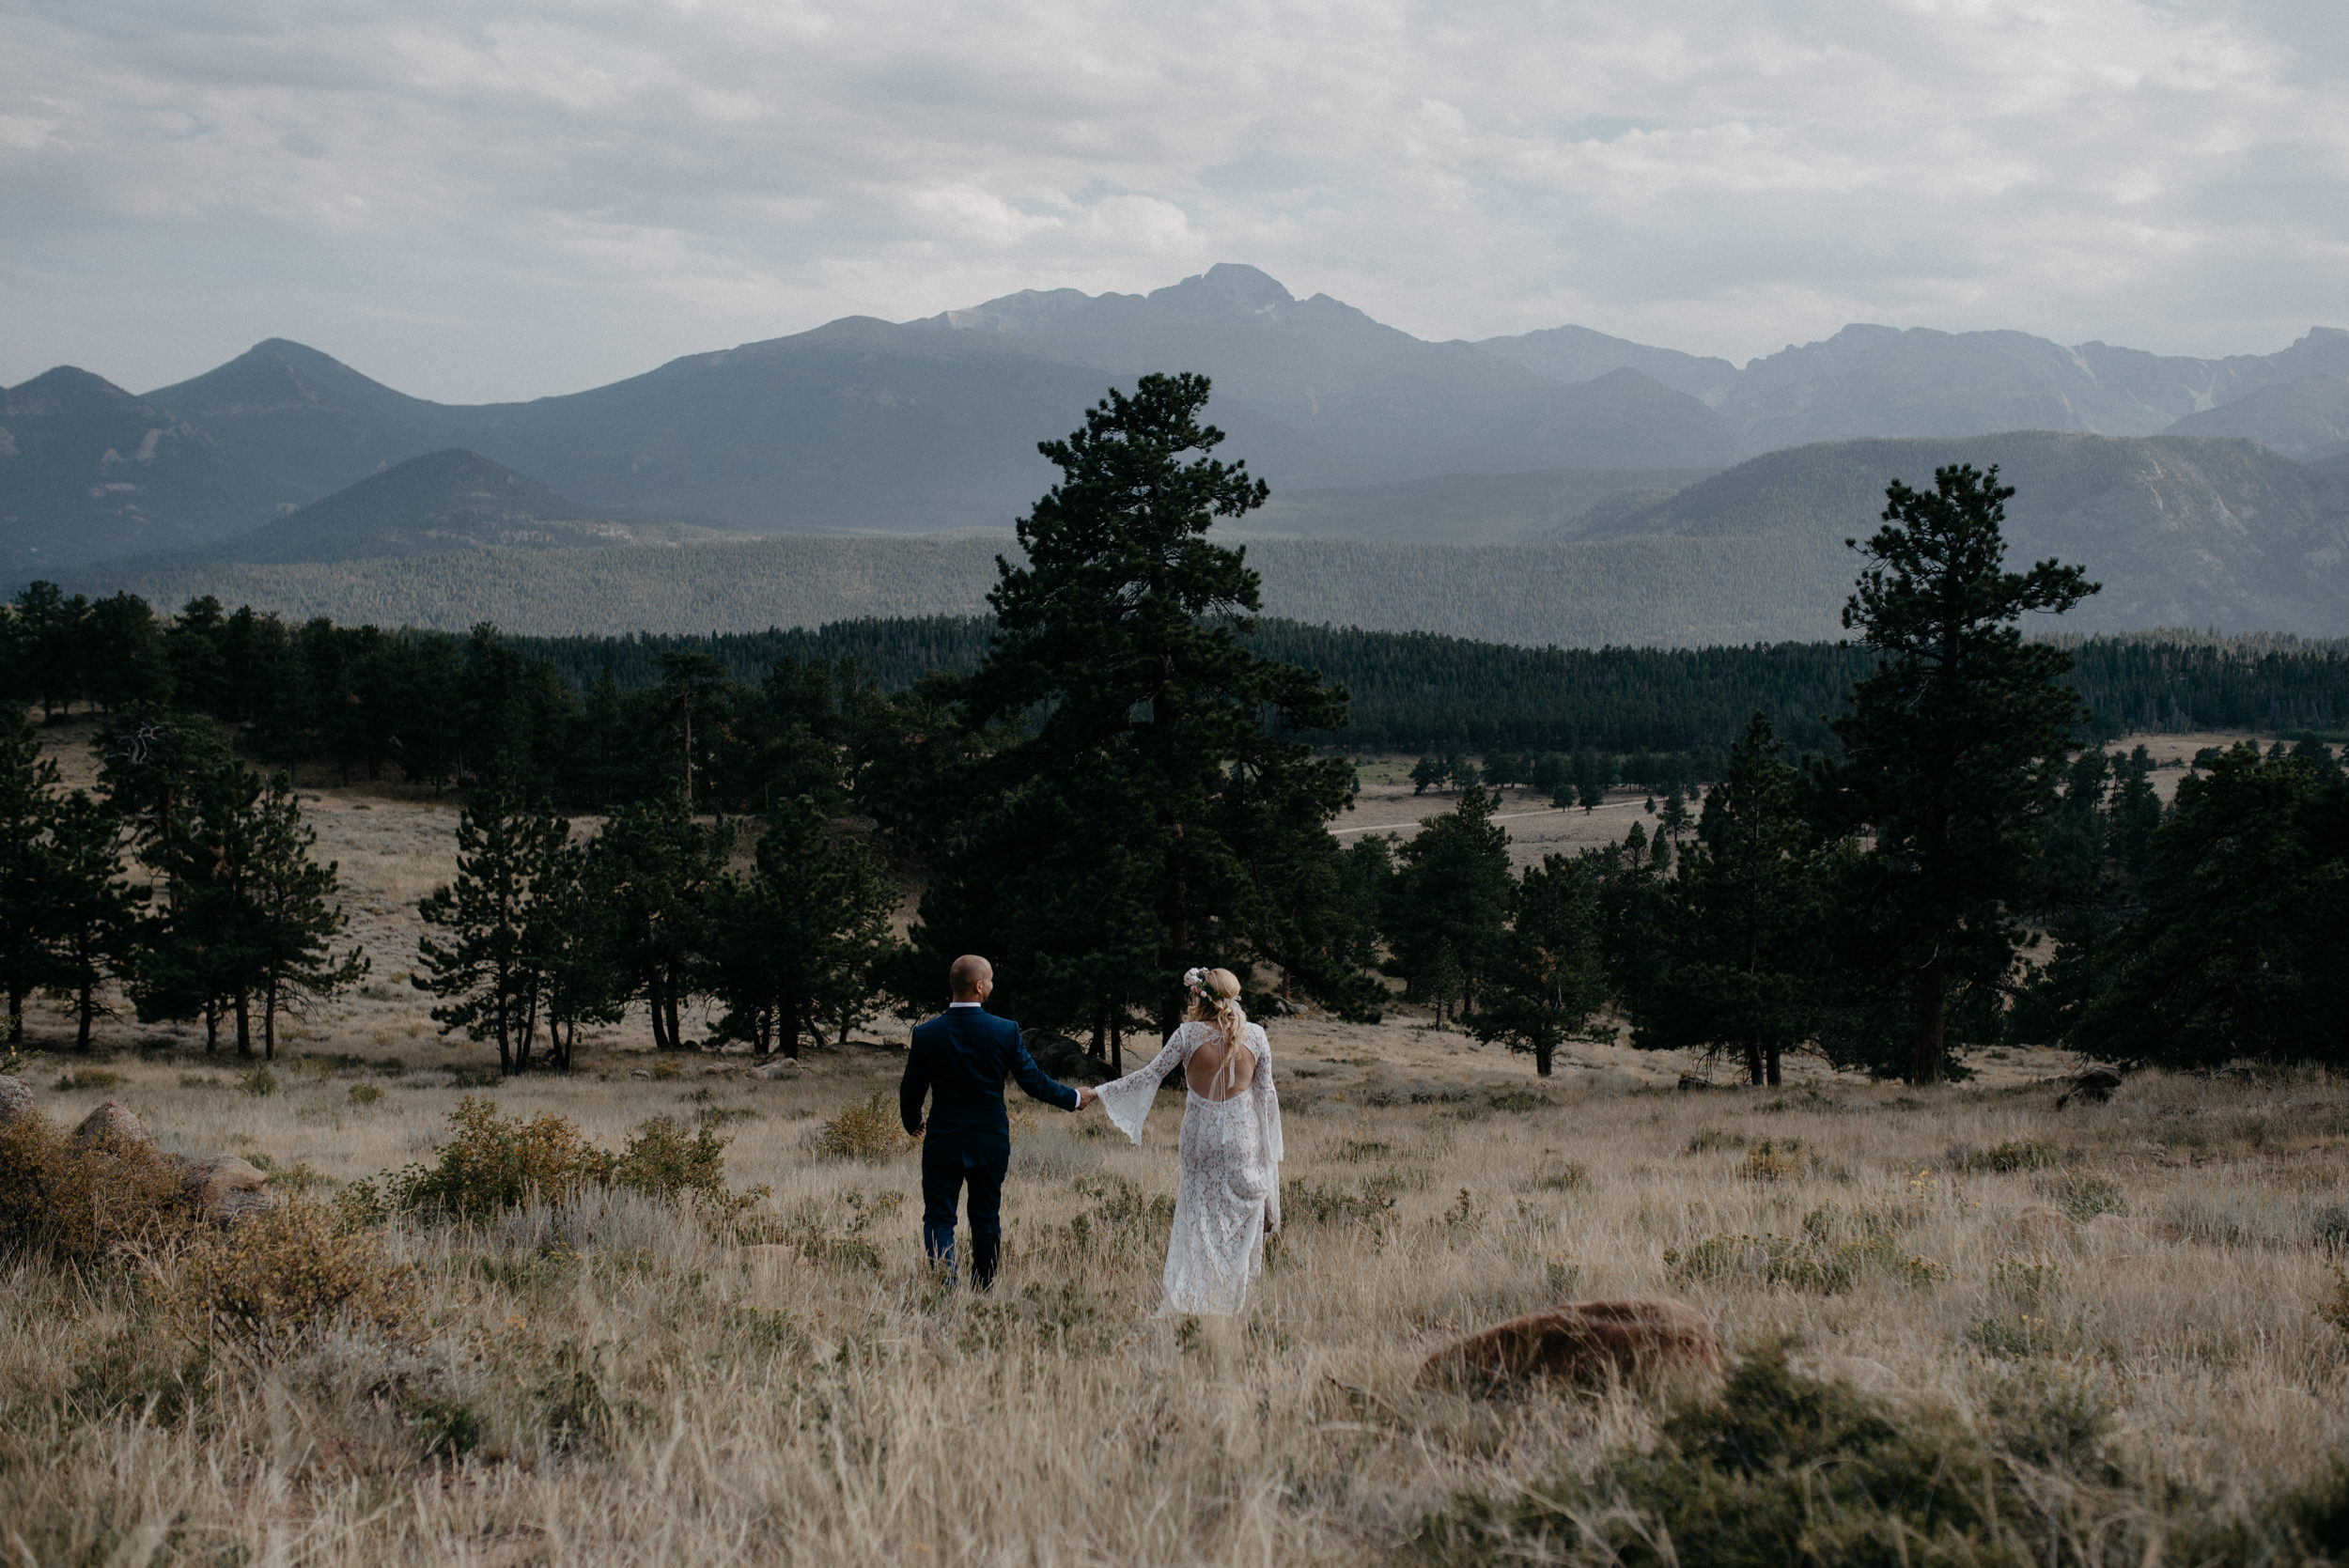 3m Curve elopement in Rocky Mountain National Park. Couples portraits by Alyssa Reinhold.